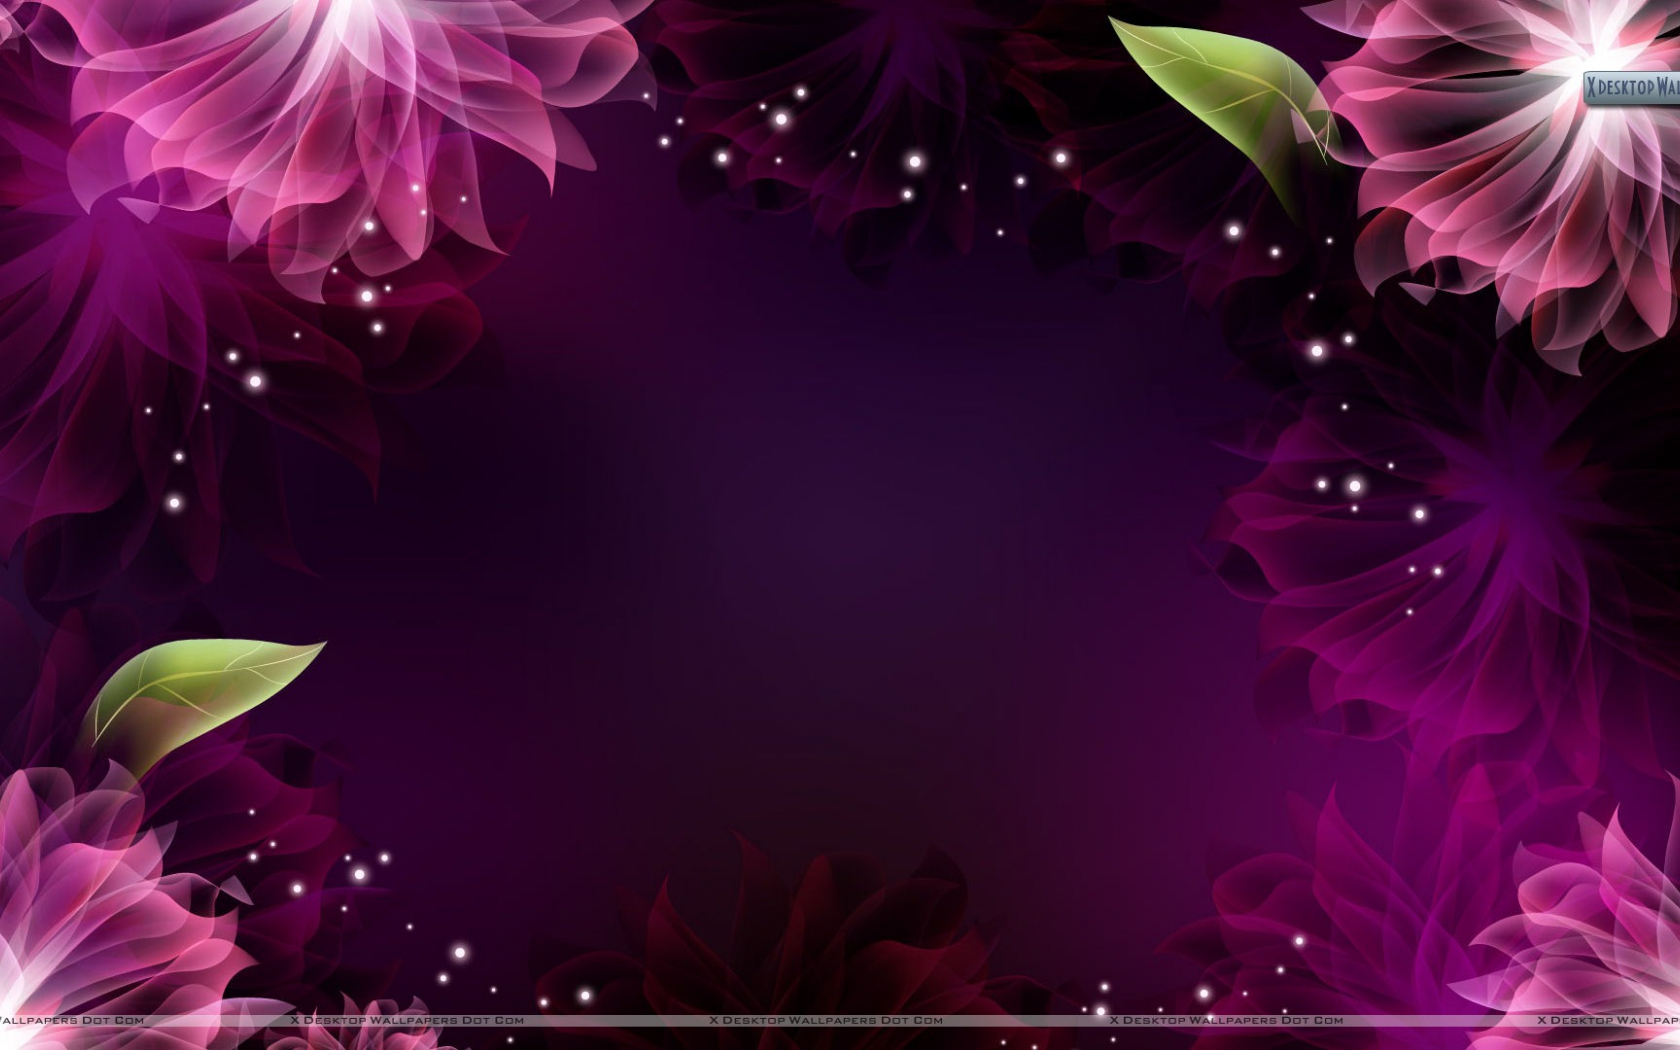 Free Download Abstract Flower Backgrounds Hd Wallpaper Background